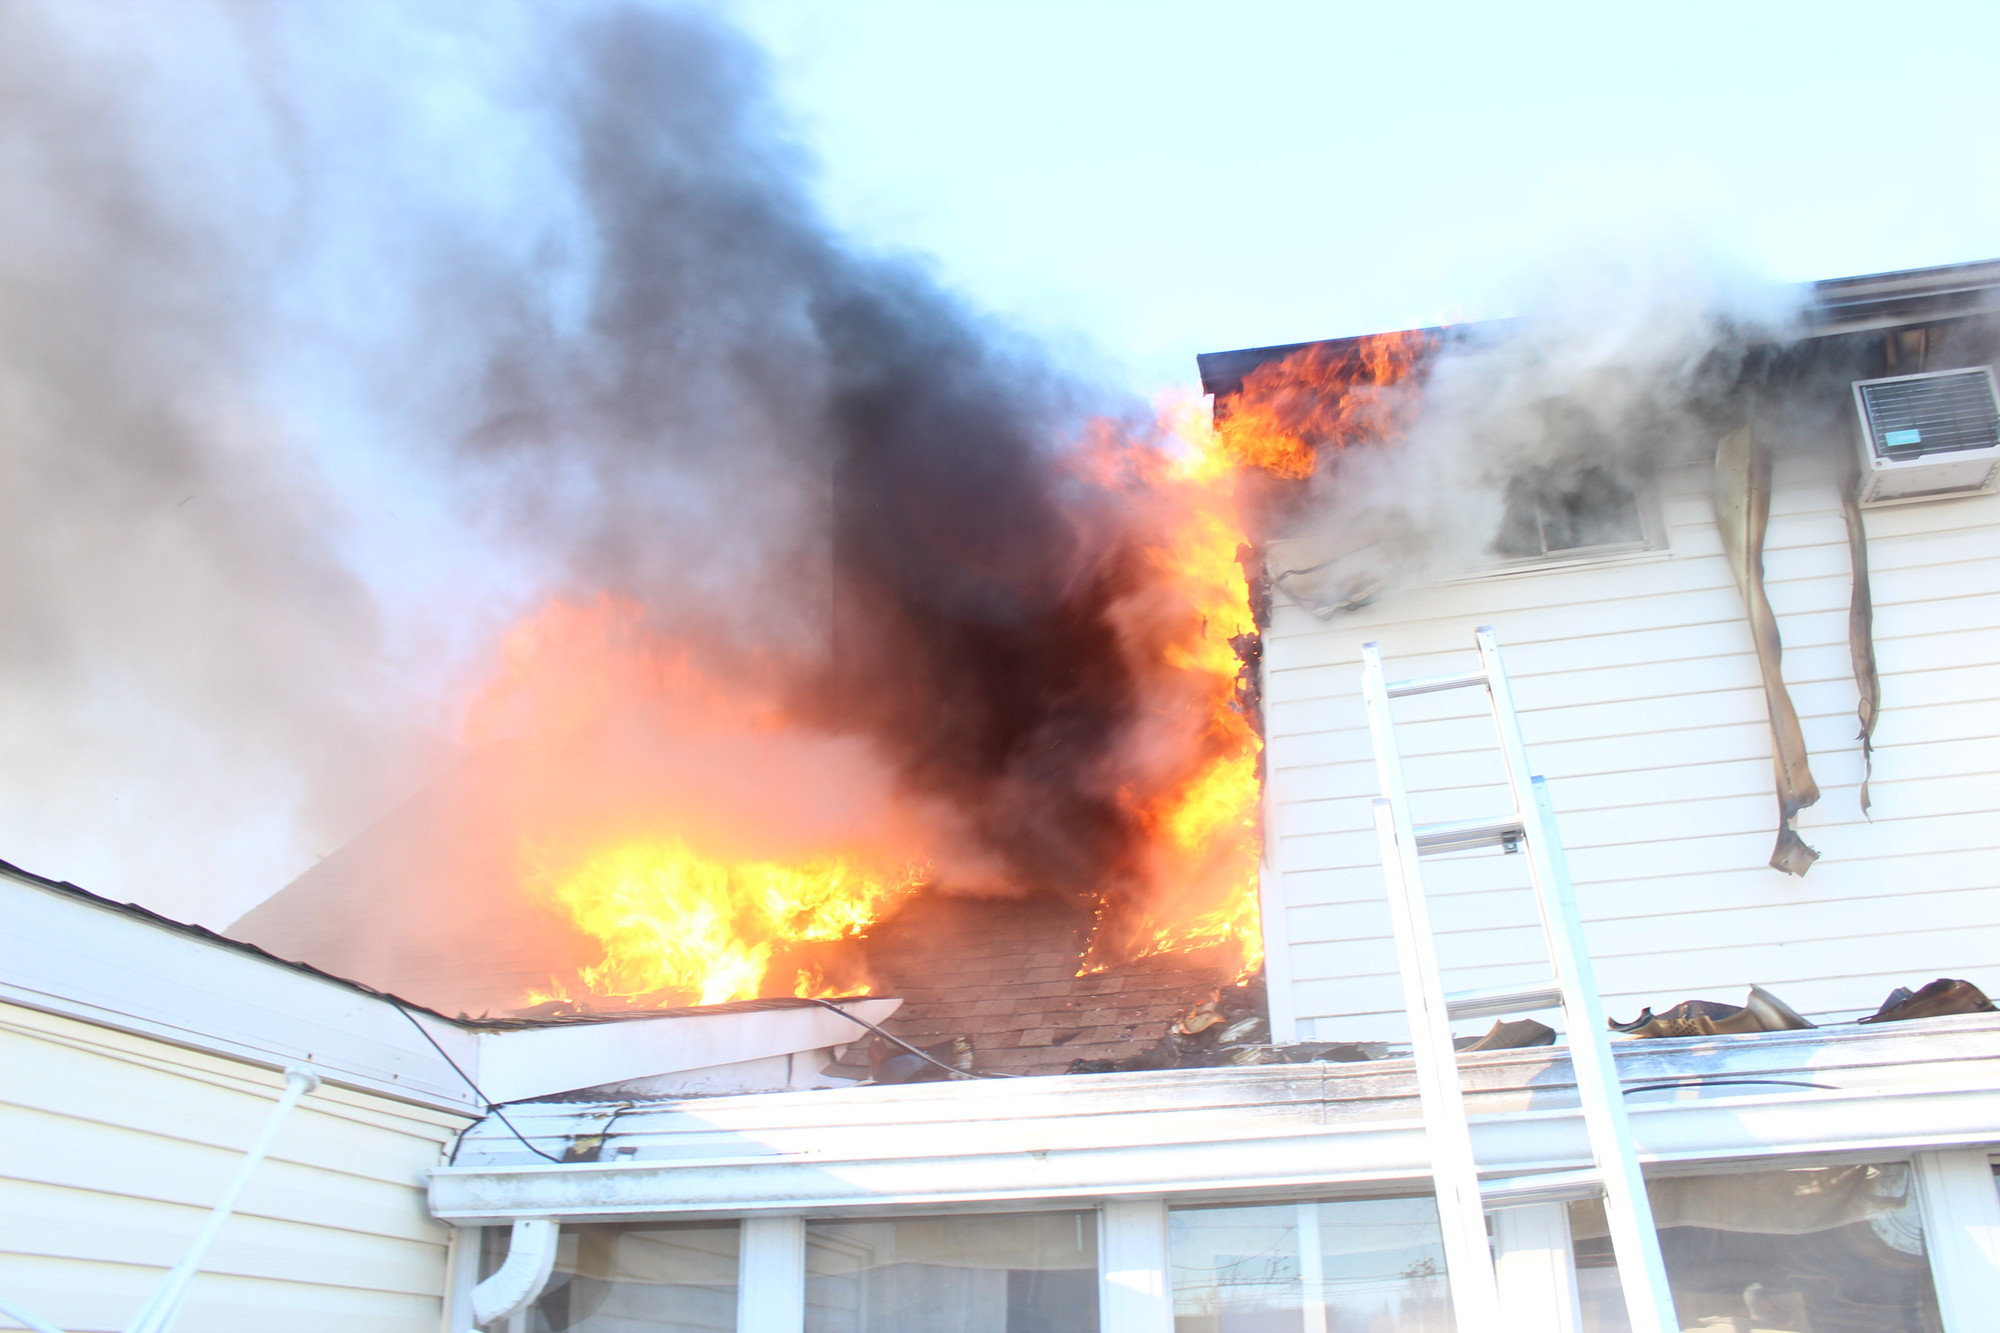 Bellmore Fire Department officials said much of the damage from the fire was concentrated on the second floor of the Ziv's home.